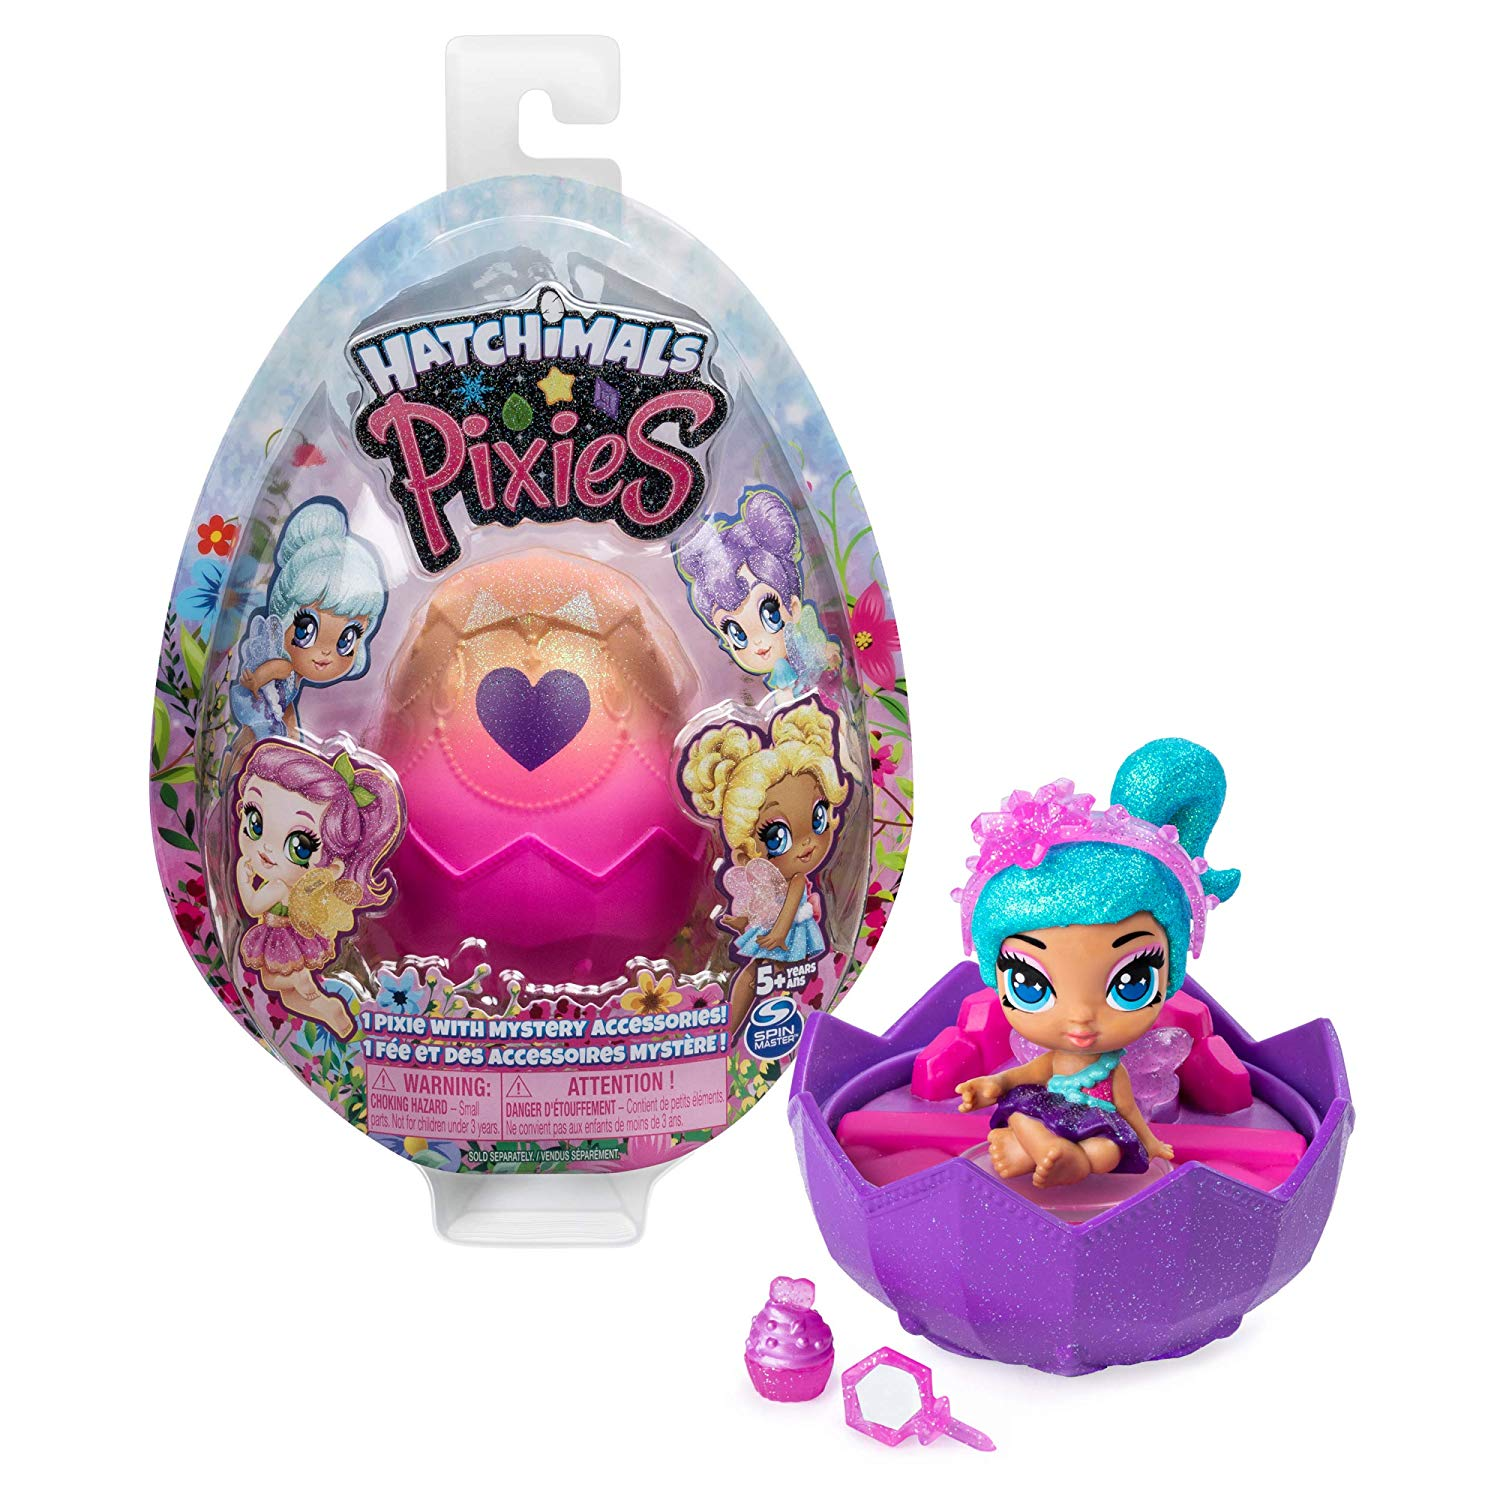 Best New Toys 2019: Hatchimals Pixies 2020